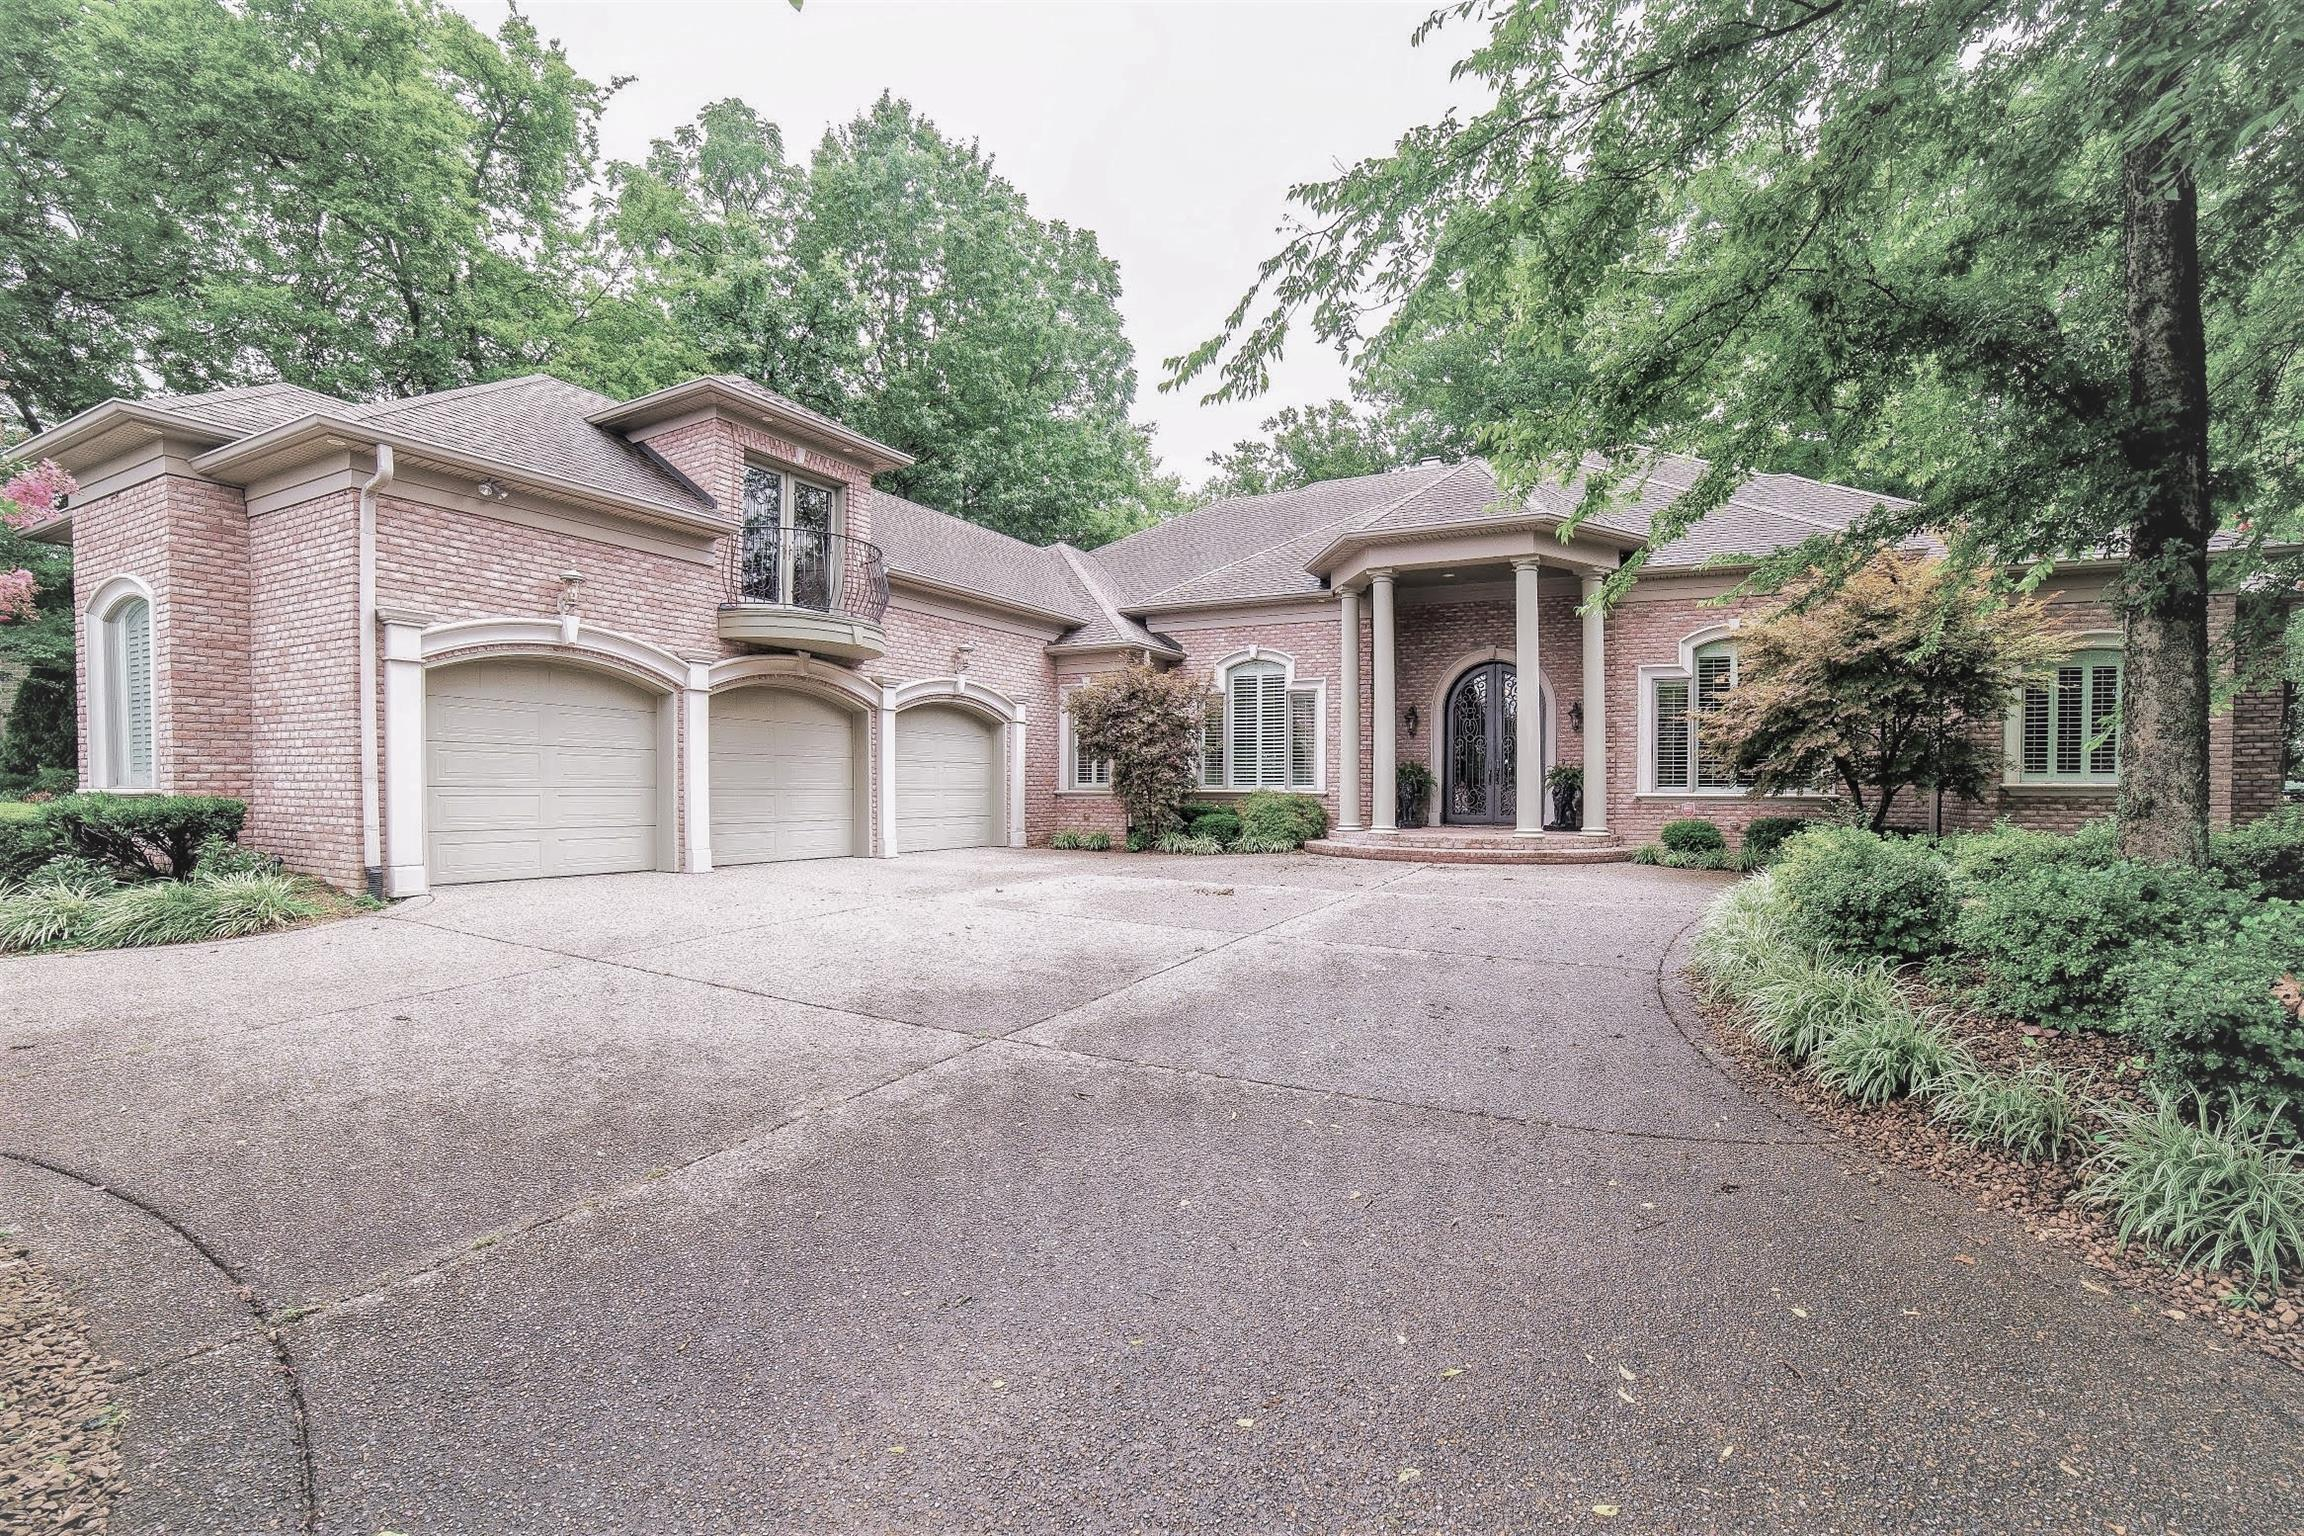 788 Plantation Way, Gallatin, Tennessee